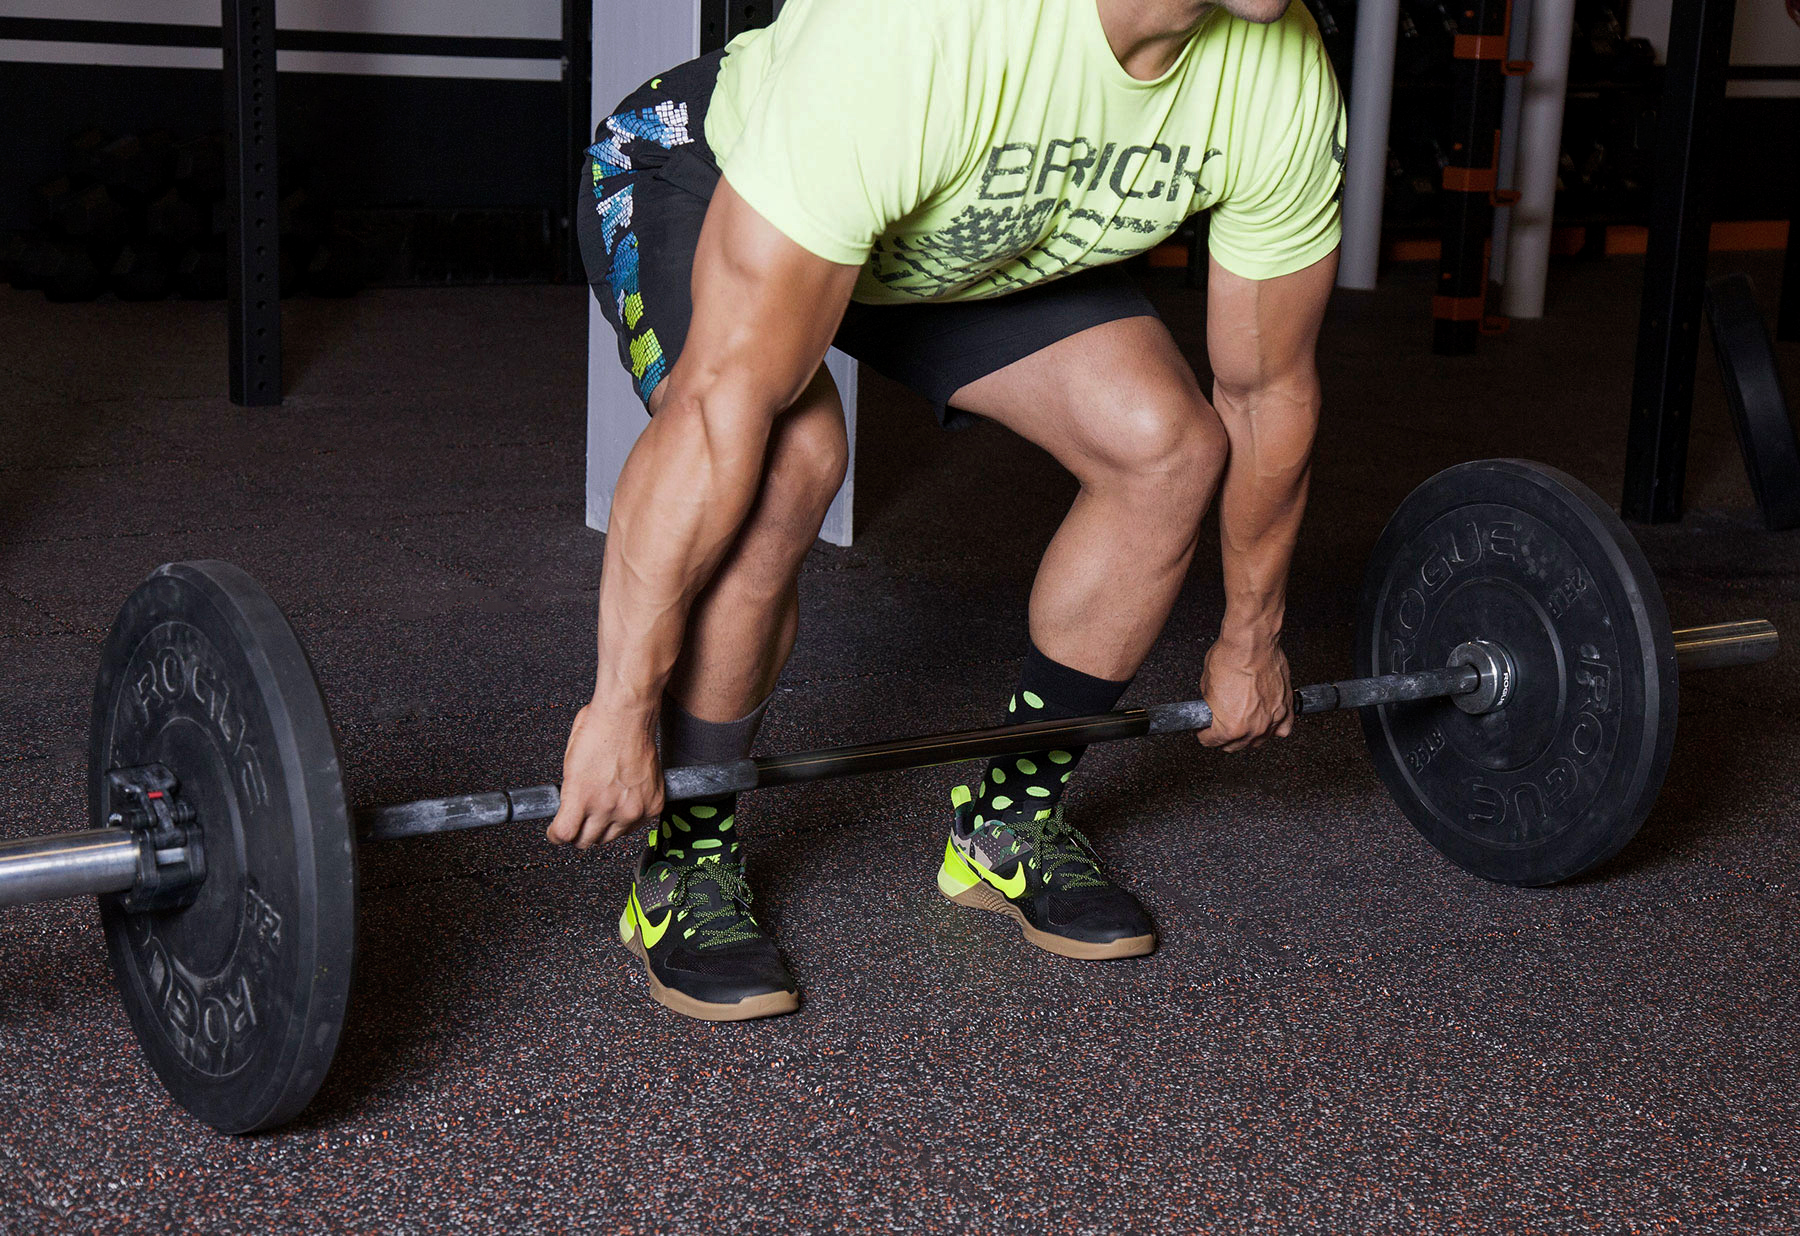 (Don't) Put Your Back Into It: How to Properly Lift a Weight